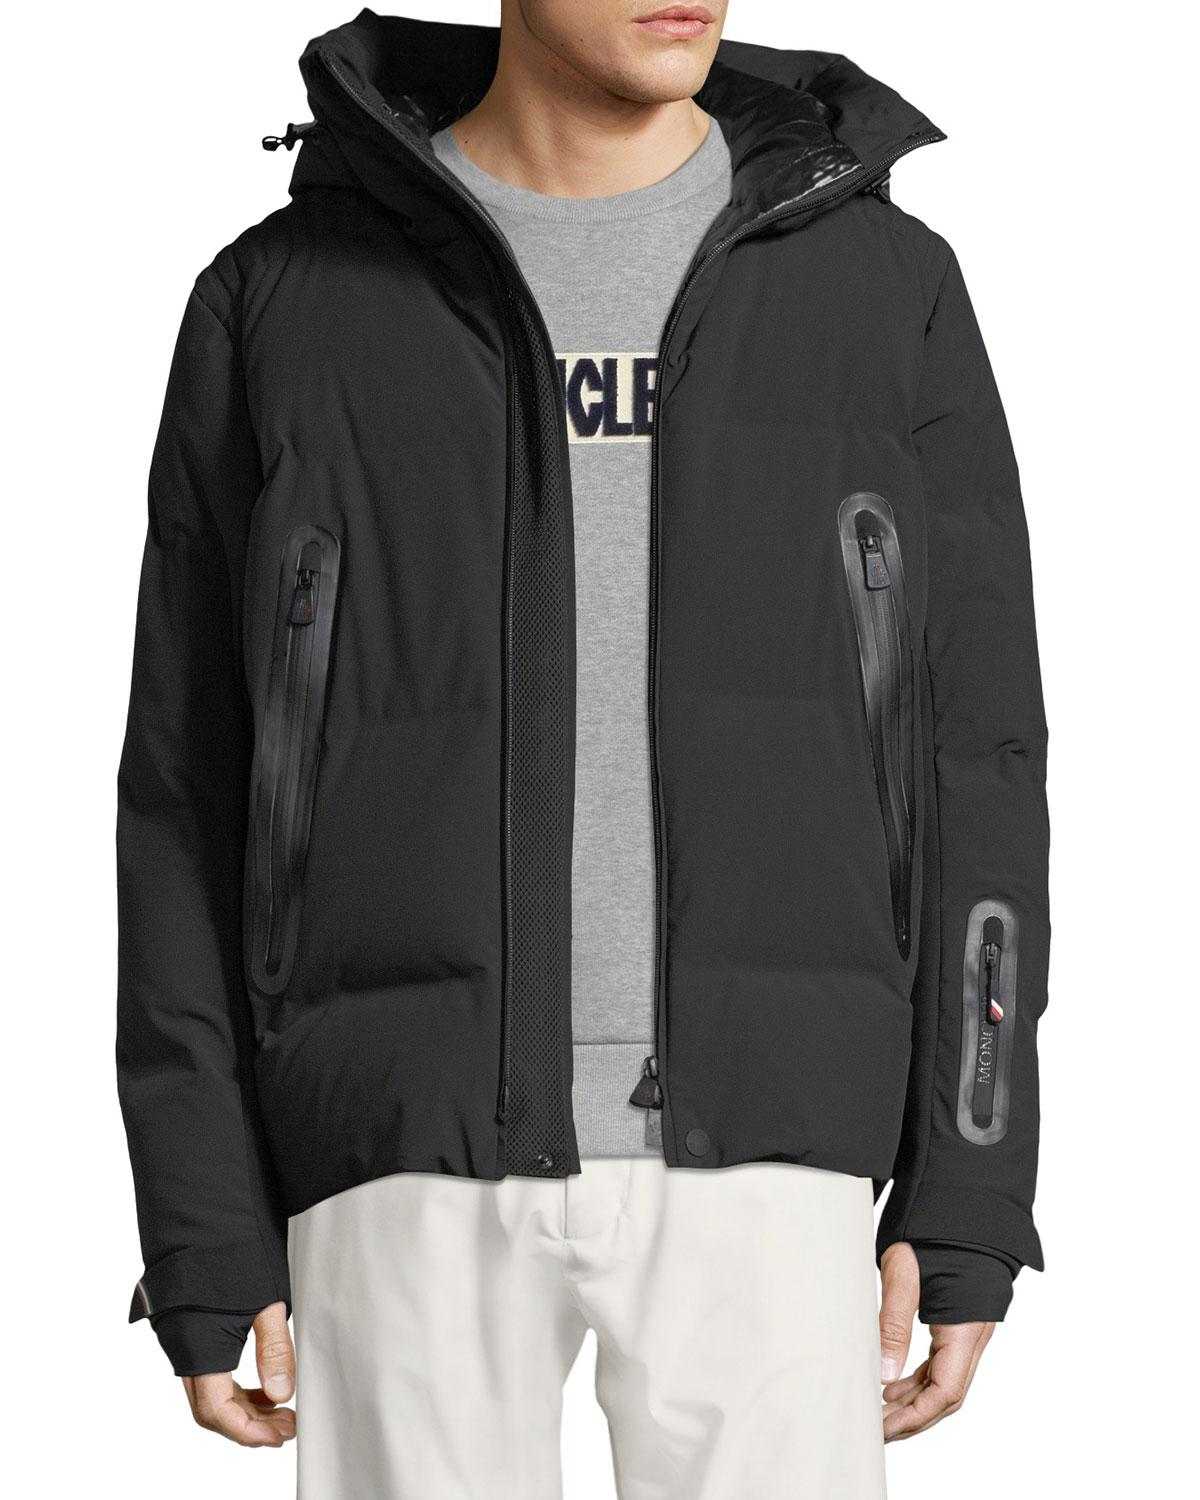 4aacac36b Lyst - Moncler Grenoble Men s Calaita Quilted Jacket in Black for Men